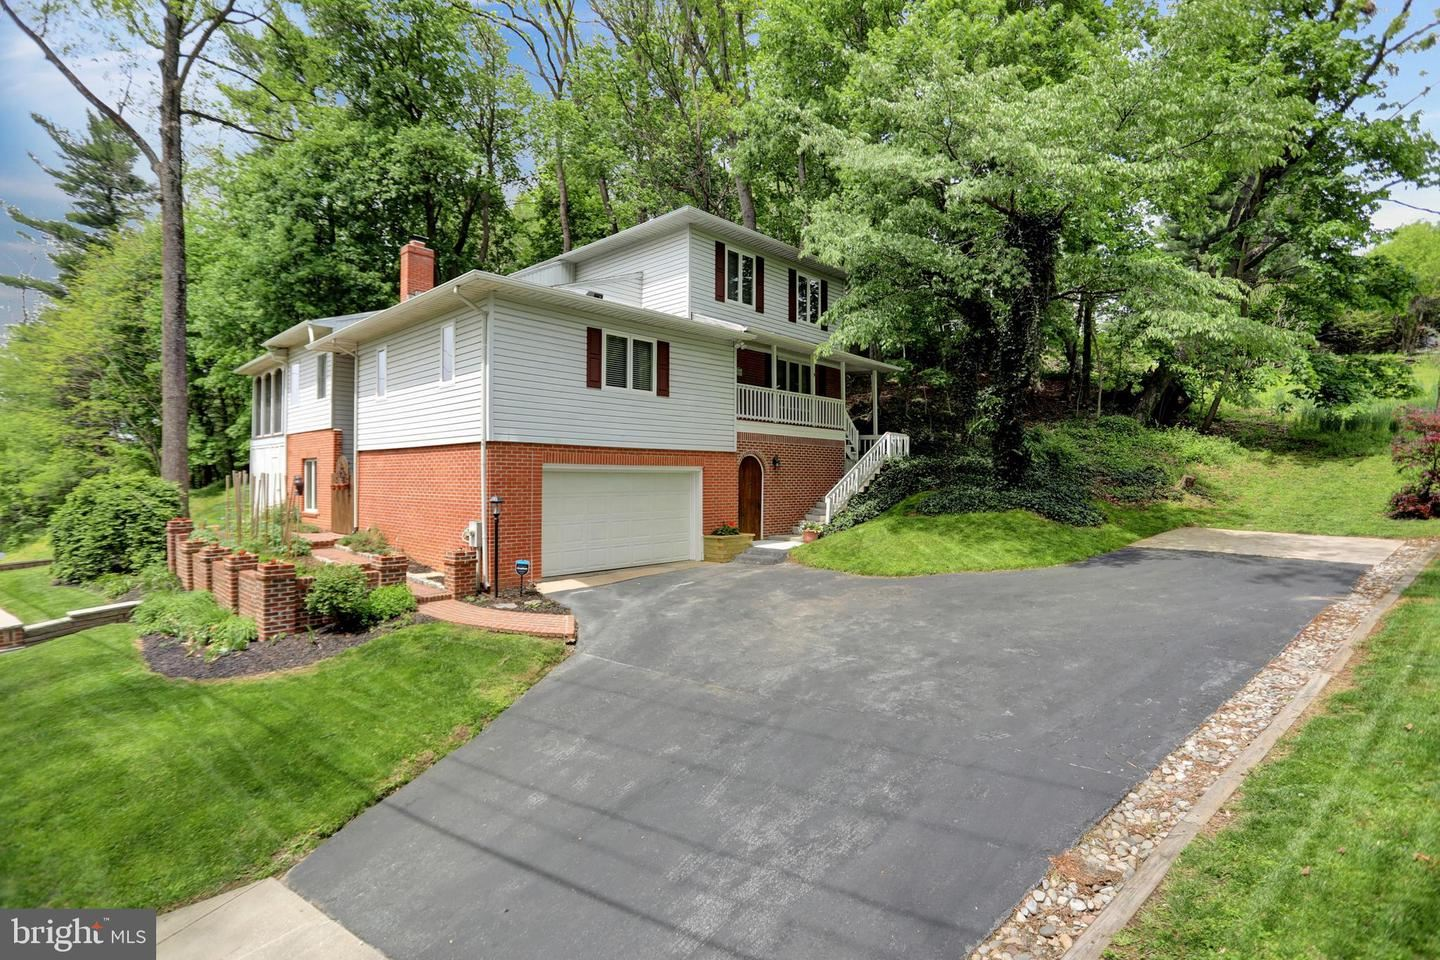 280 UNIONTOWN RD, Westminster, MD 21157 - MLS#: MDCR204324